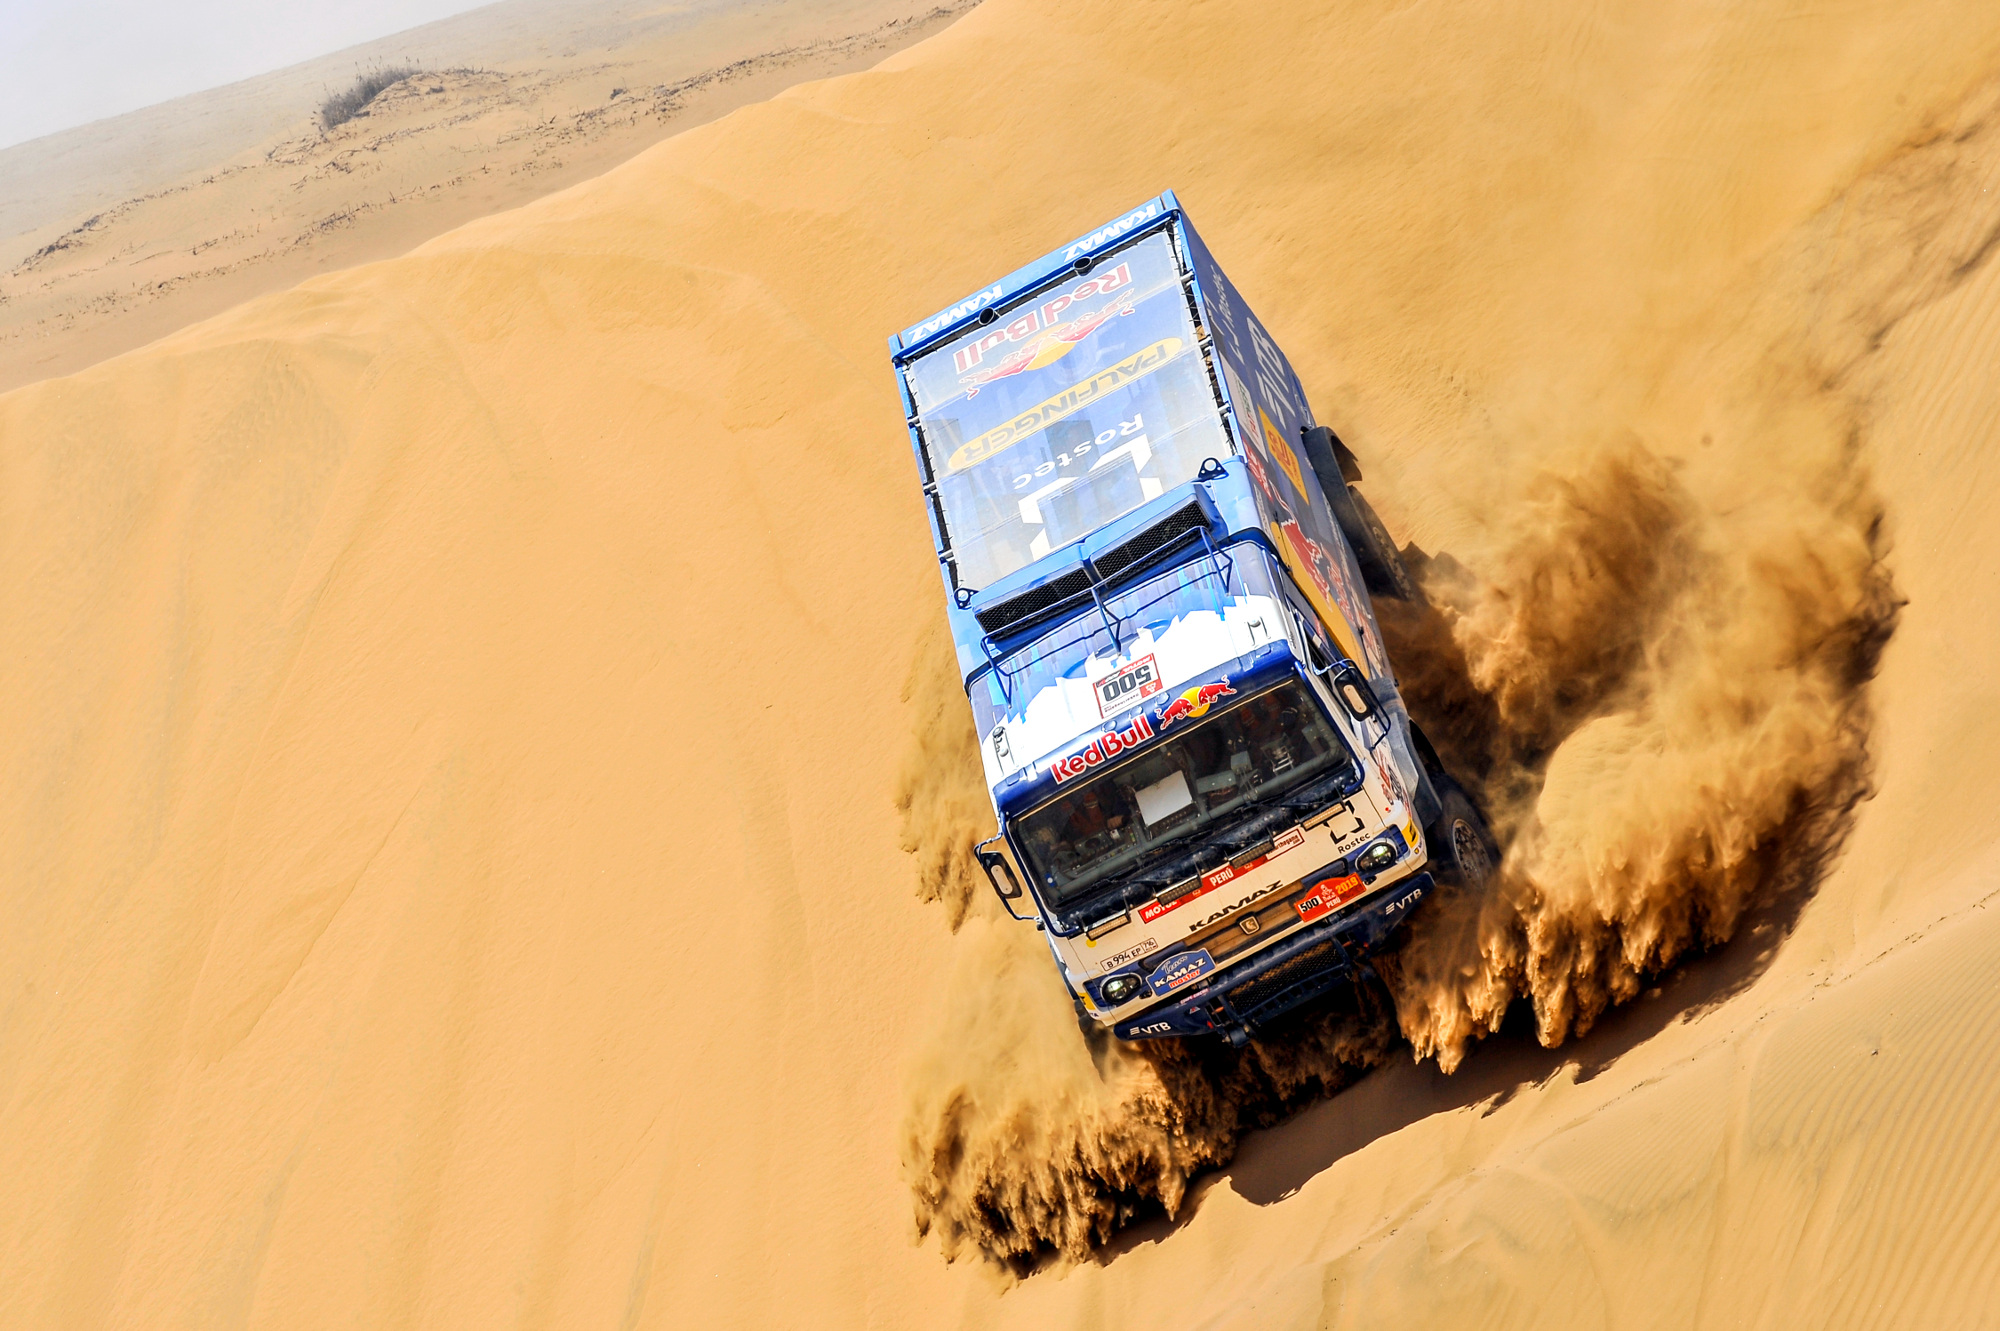 500 NIKOLAEV Eduard (rus); IAKOVLEV Evgenii (rus); RYBAKOV Vladimir (rus); Kamaz; Kamaz - Master; Truck; Camion; action during the Dakar 2019; Stage 5; Tacna - Arequipa; peru; on january 11